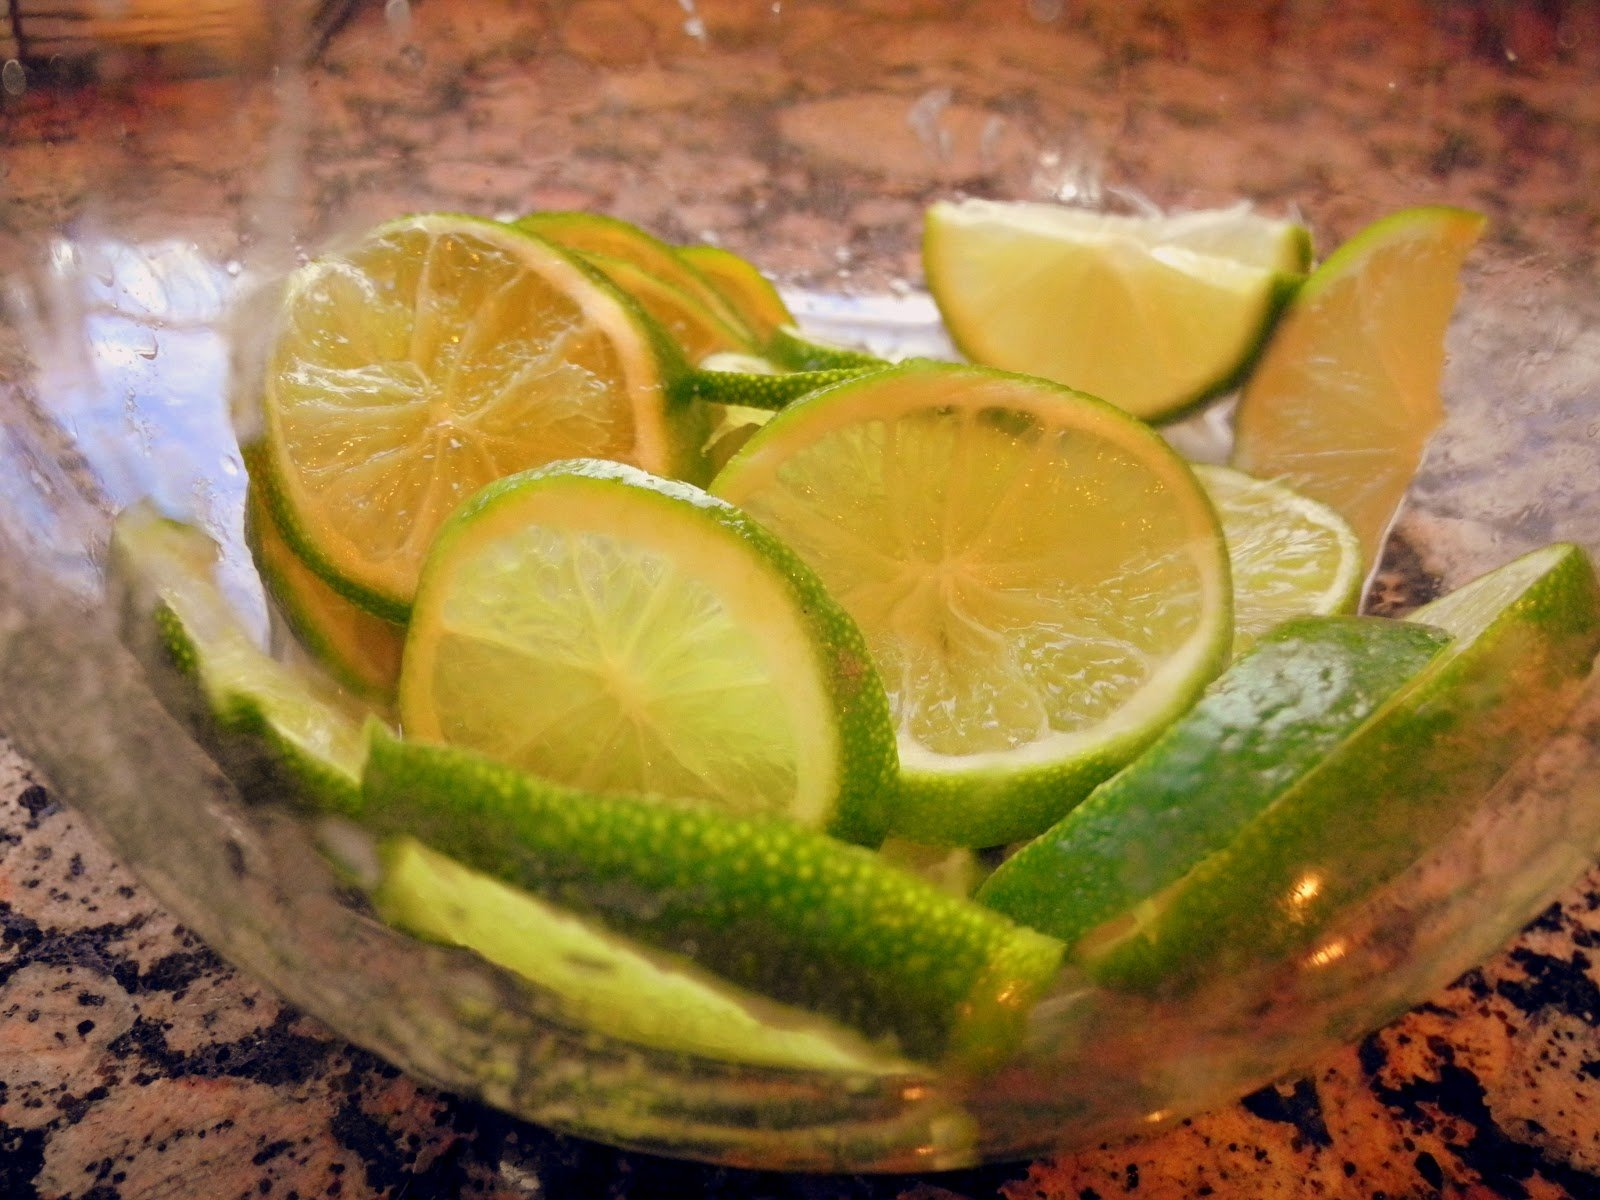 Sparkling Limeade with Mint